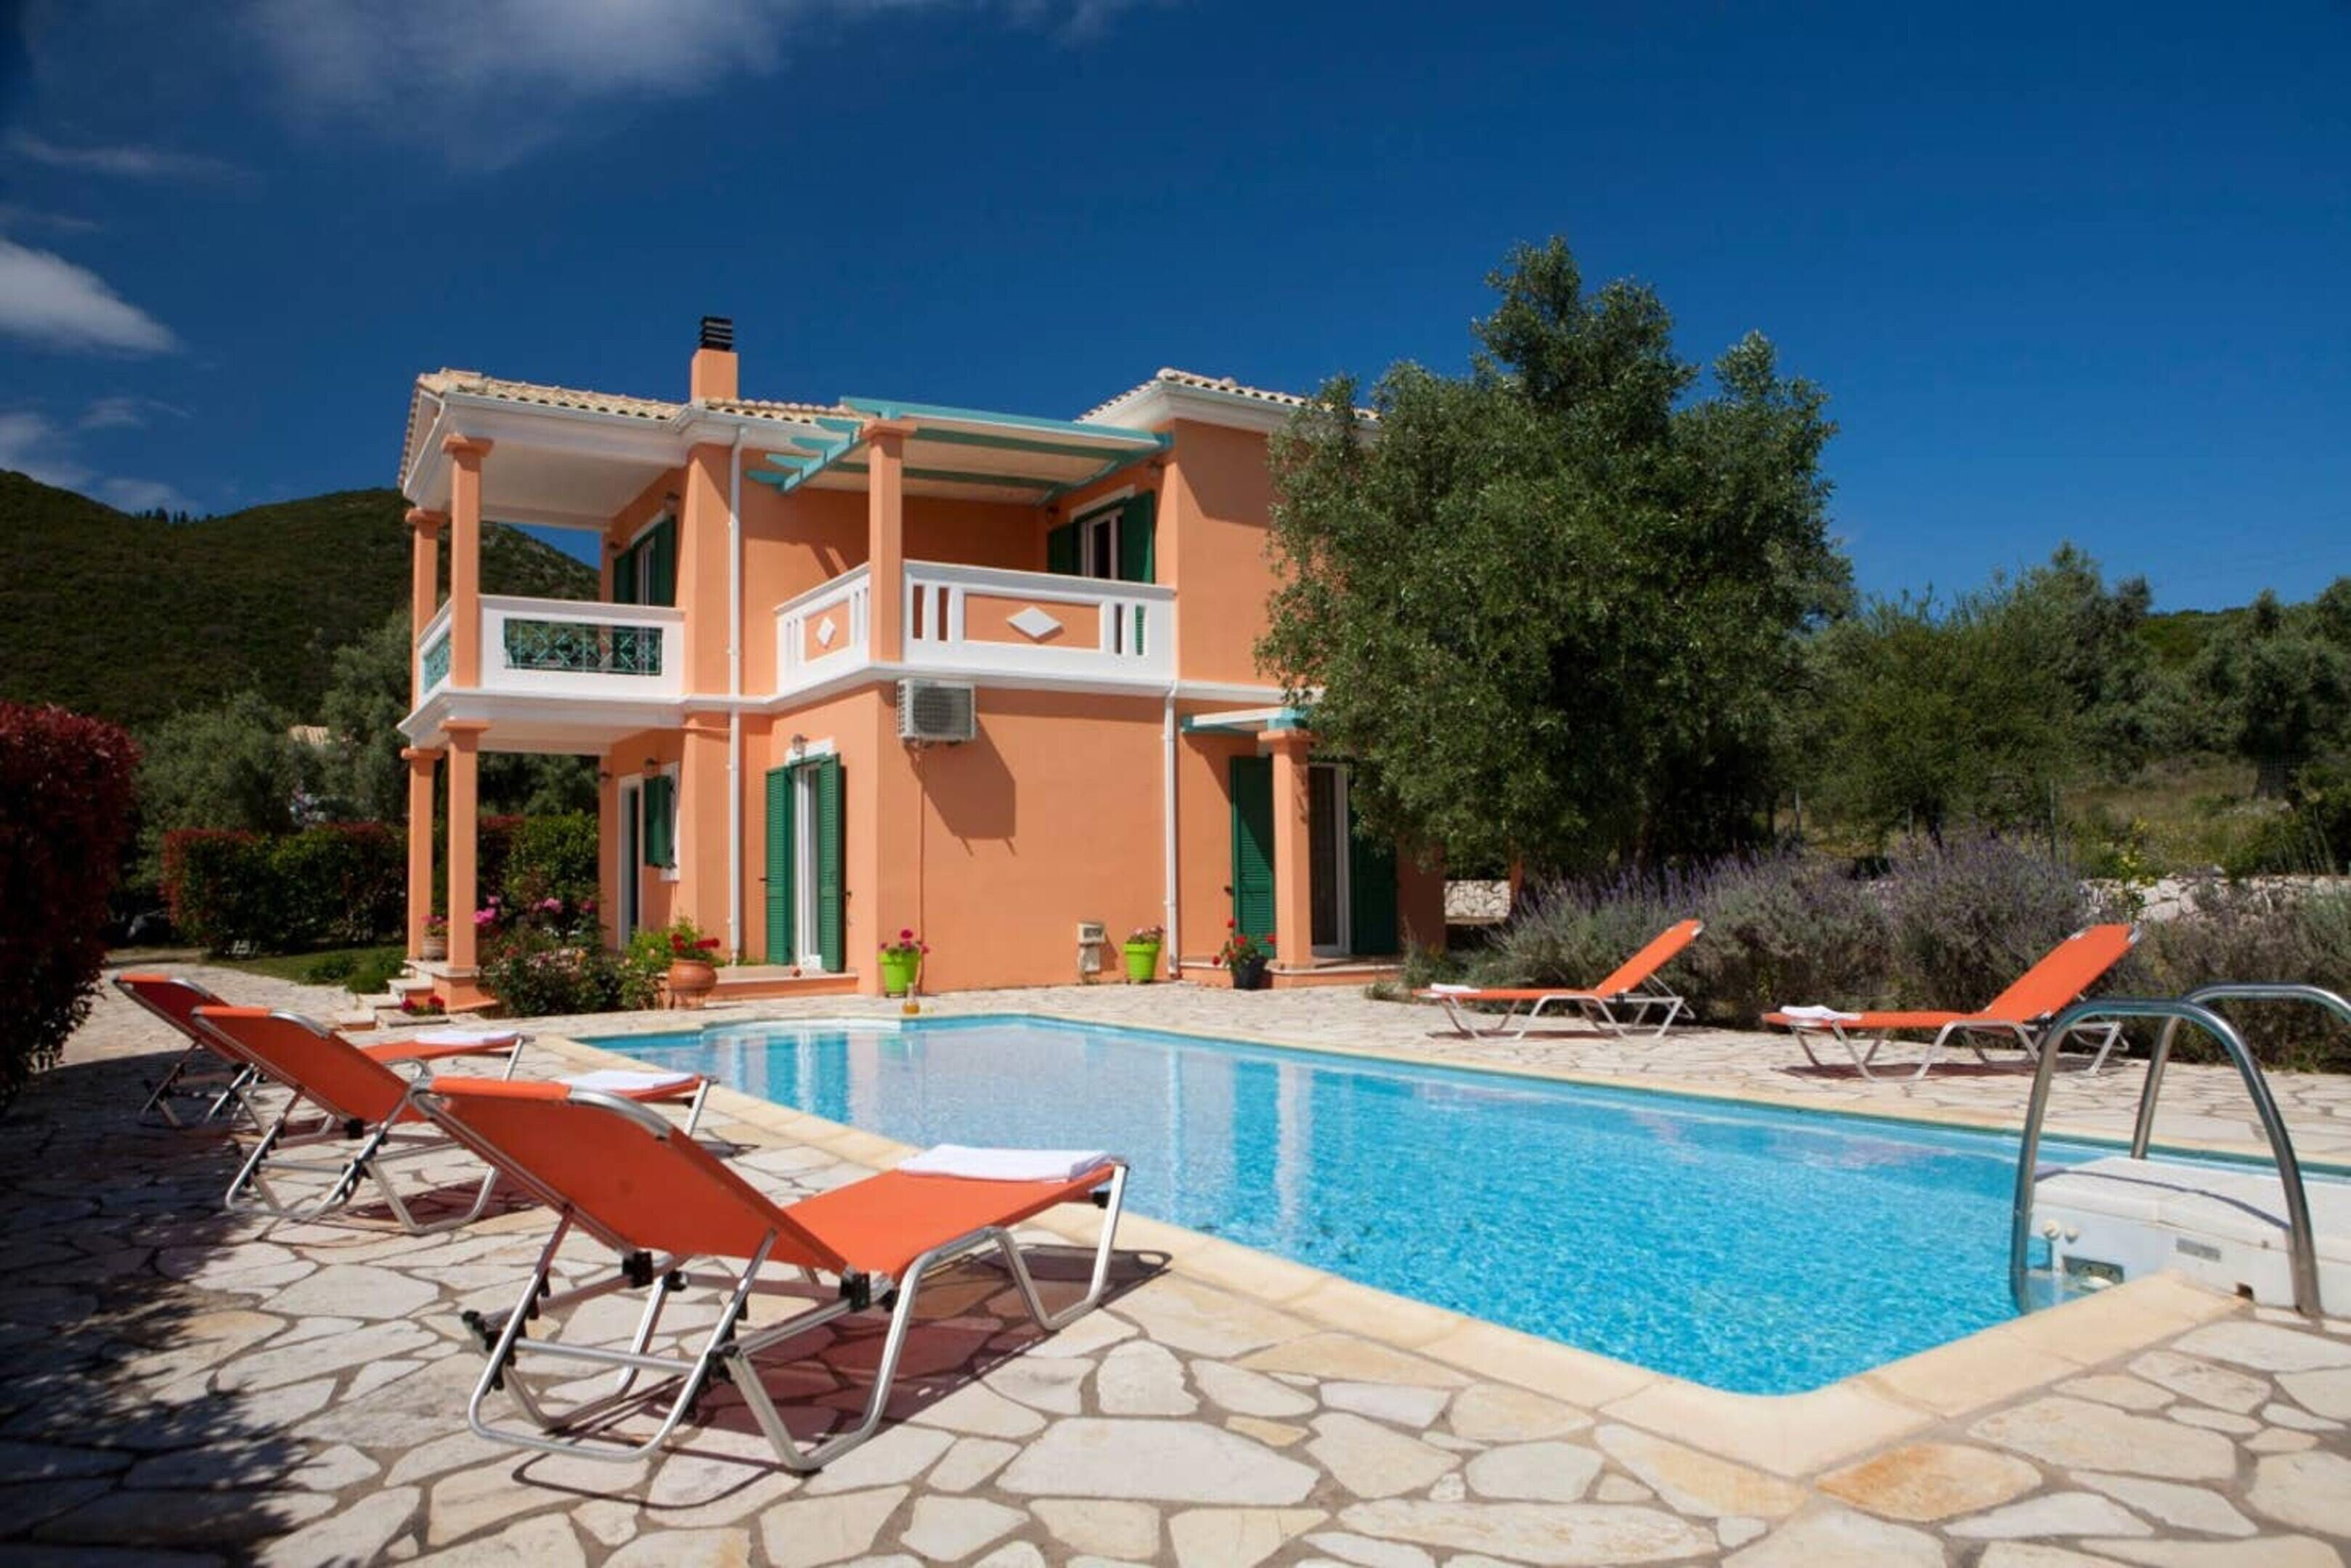 Villa With 3 Bedrooms In Lefkada,  With Private Pool And Enclosed Garden - 2 Km From The Beach